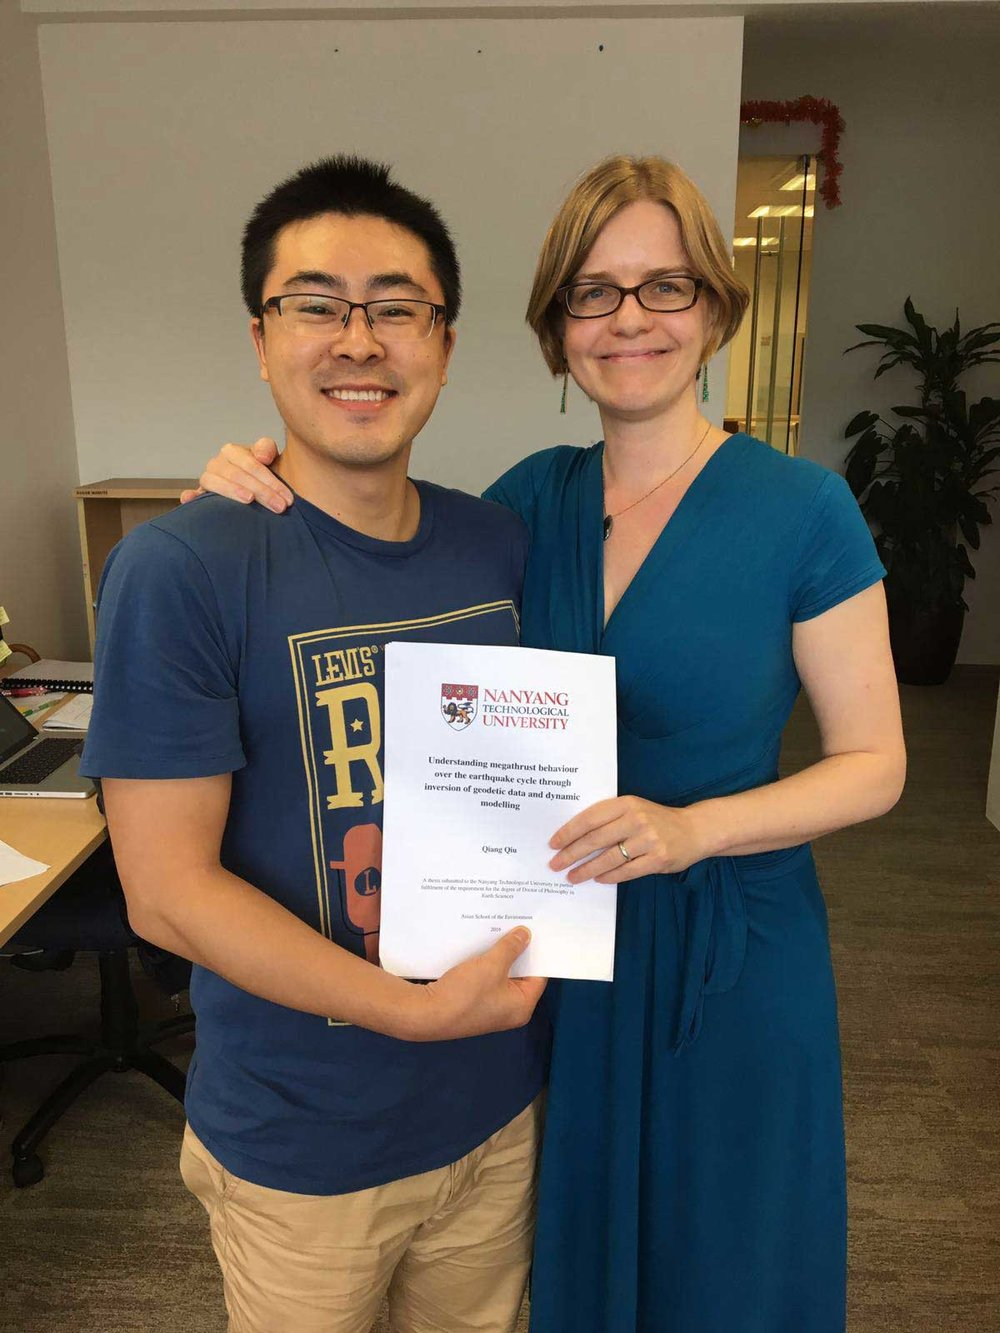 Qiu Qiang submitting his thesis!